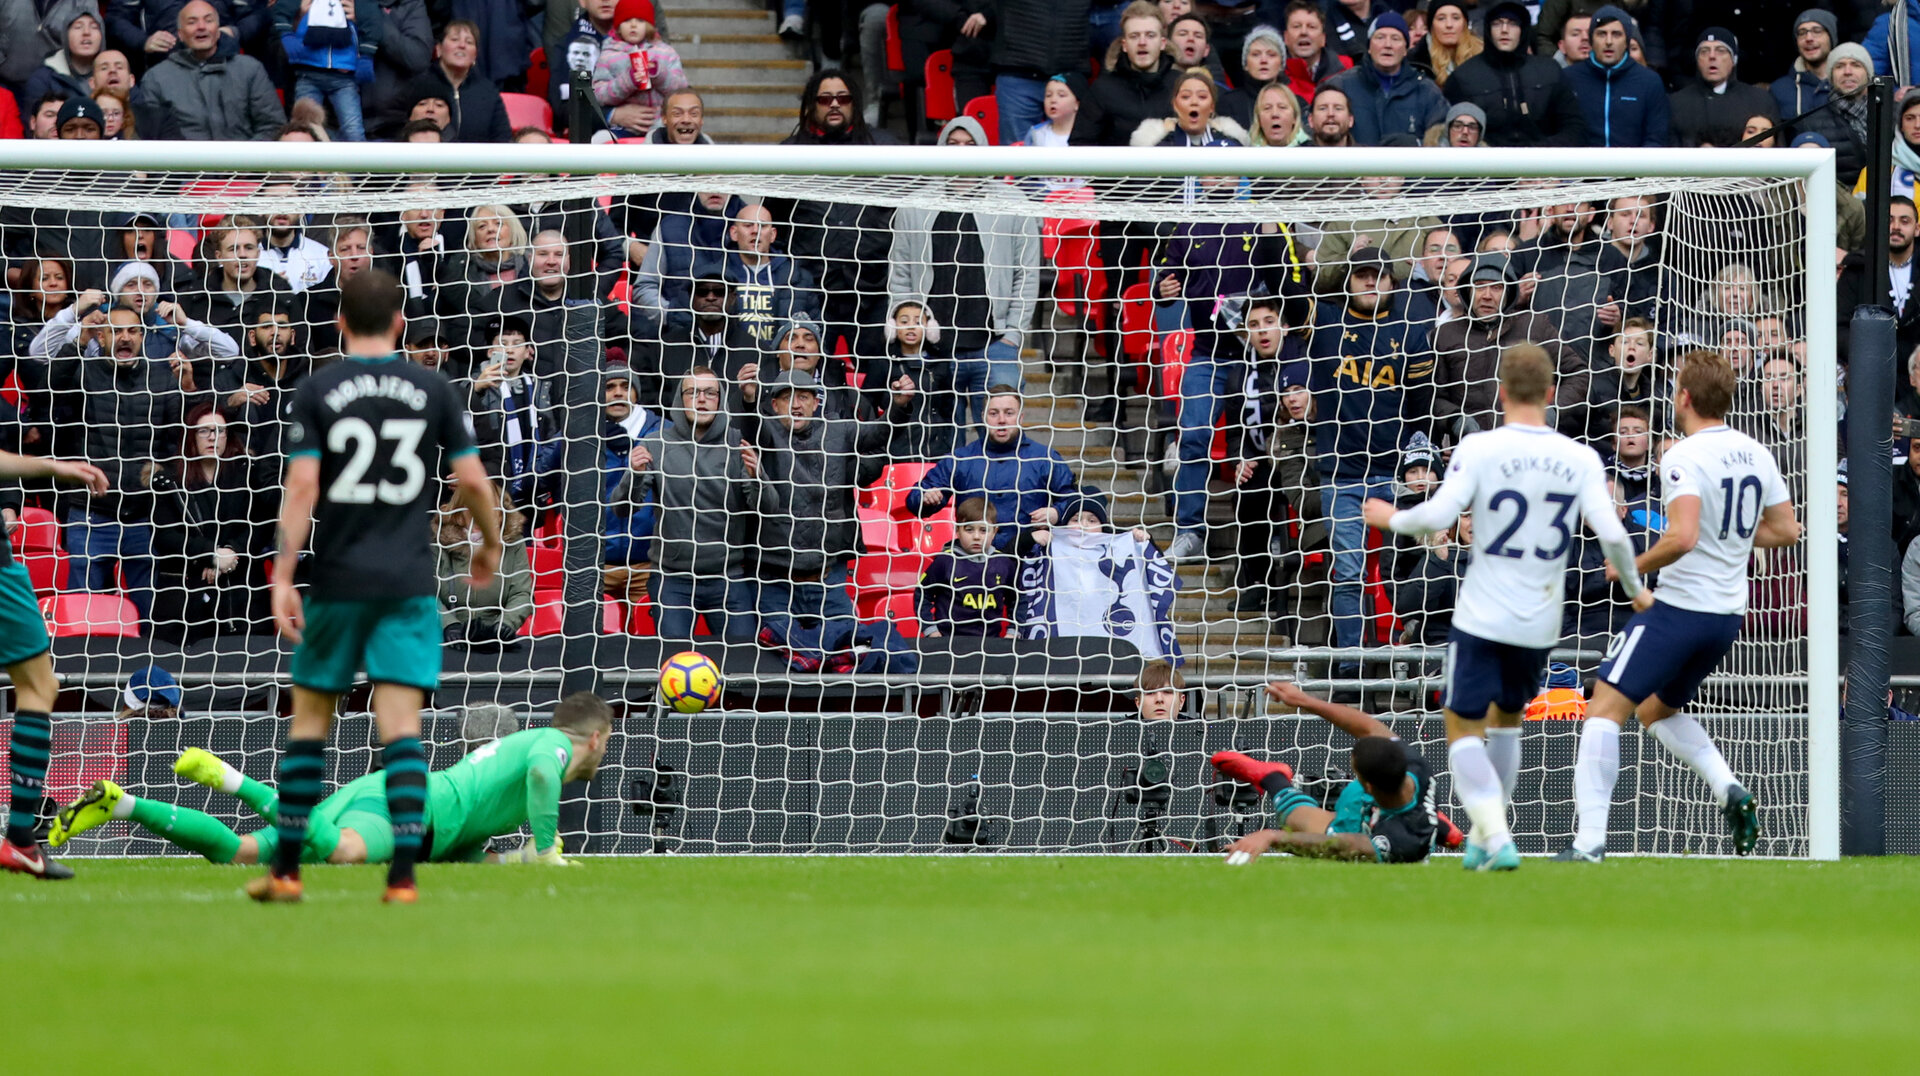 LONDON, ENGLAND - DECEMBER 26: Tottenham's Harry Kane scores his second goal during the Premier League match between Tottenham Hotspur and Southampton at Wembley Stadium on December 26, 2017 in London, England. (Photo by Matt Watson/Southampton FC via Getty Images)